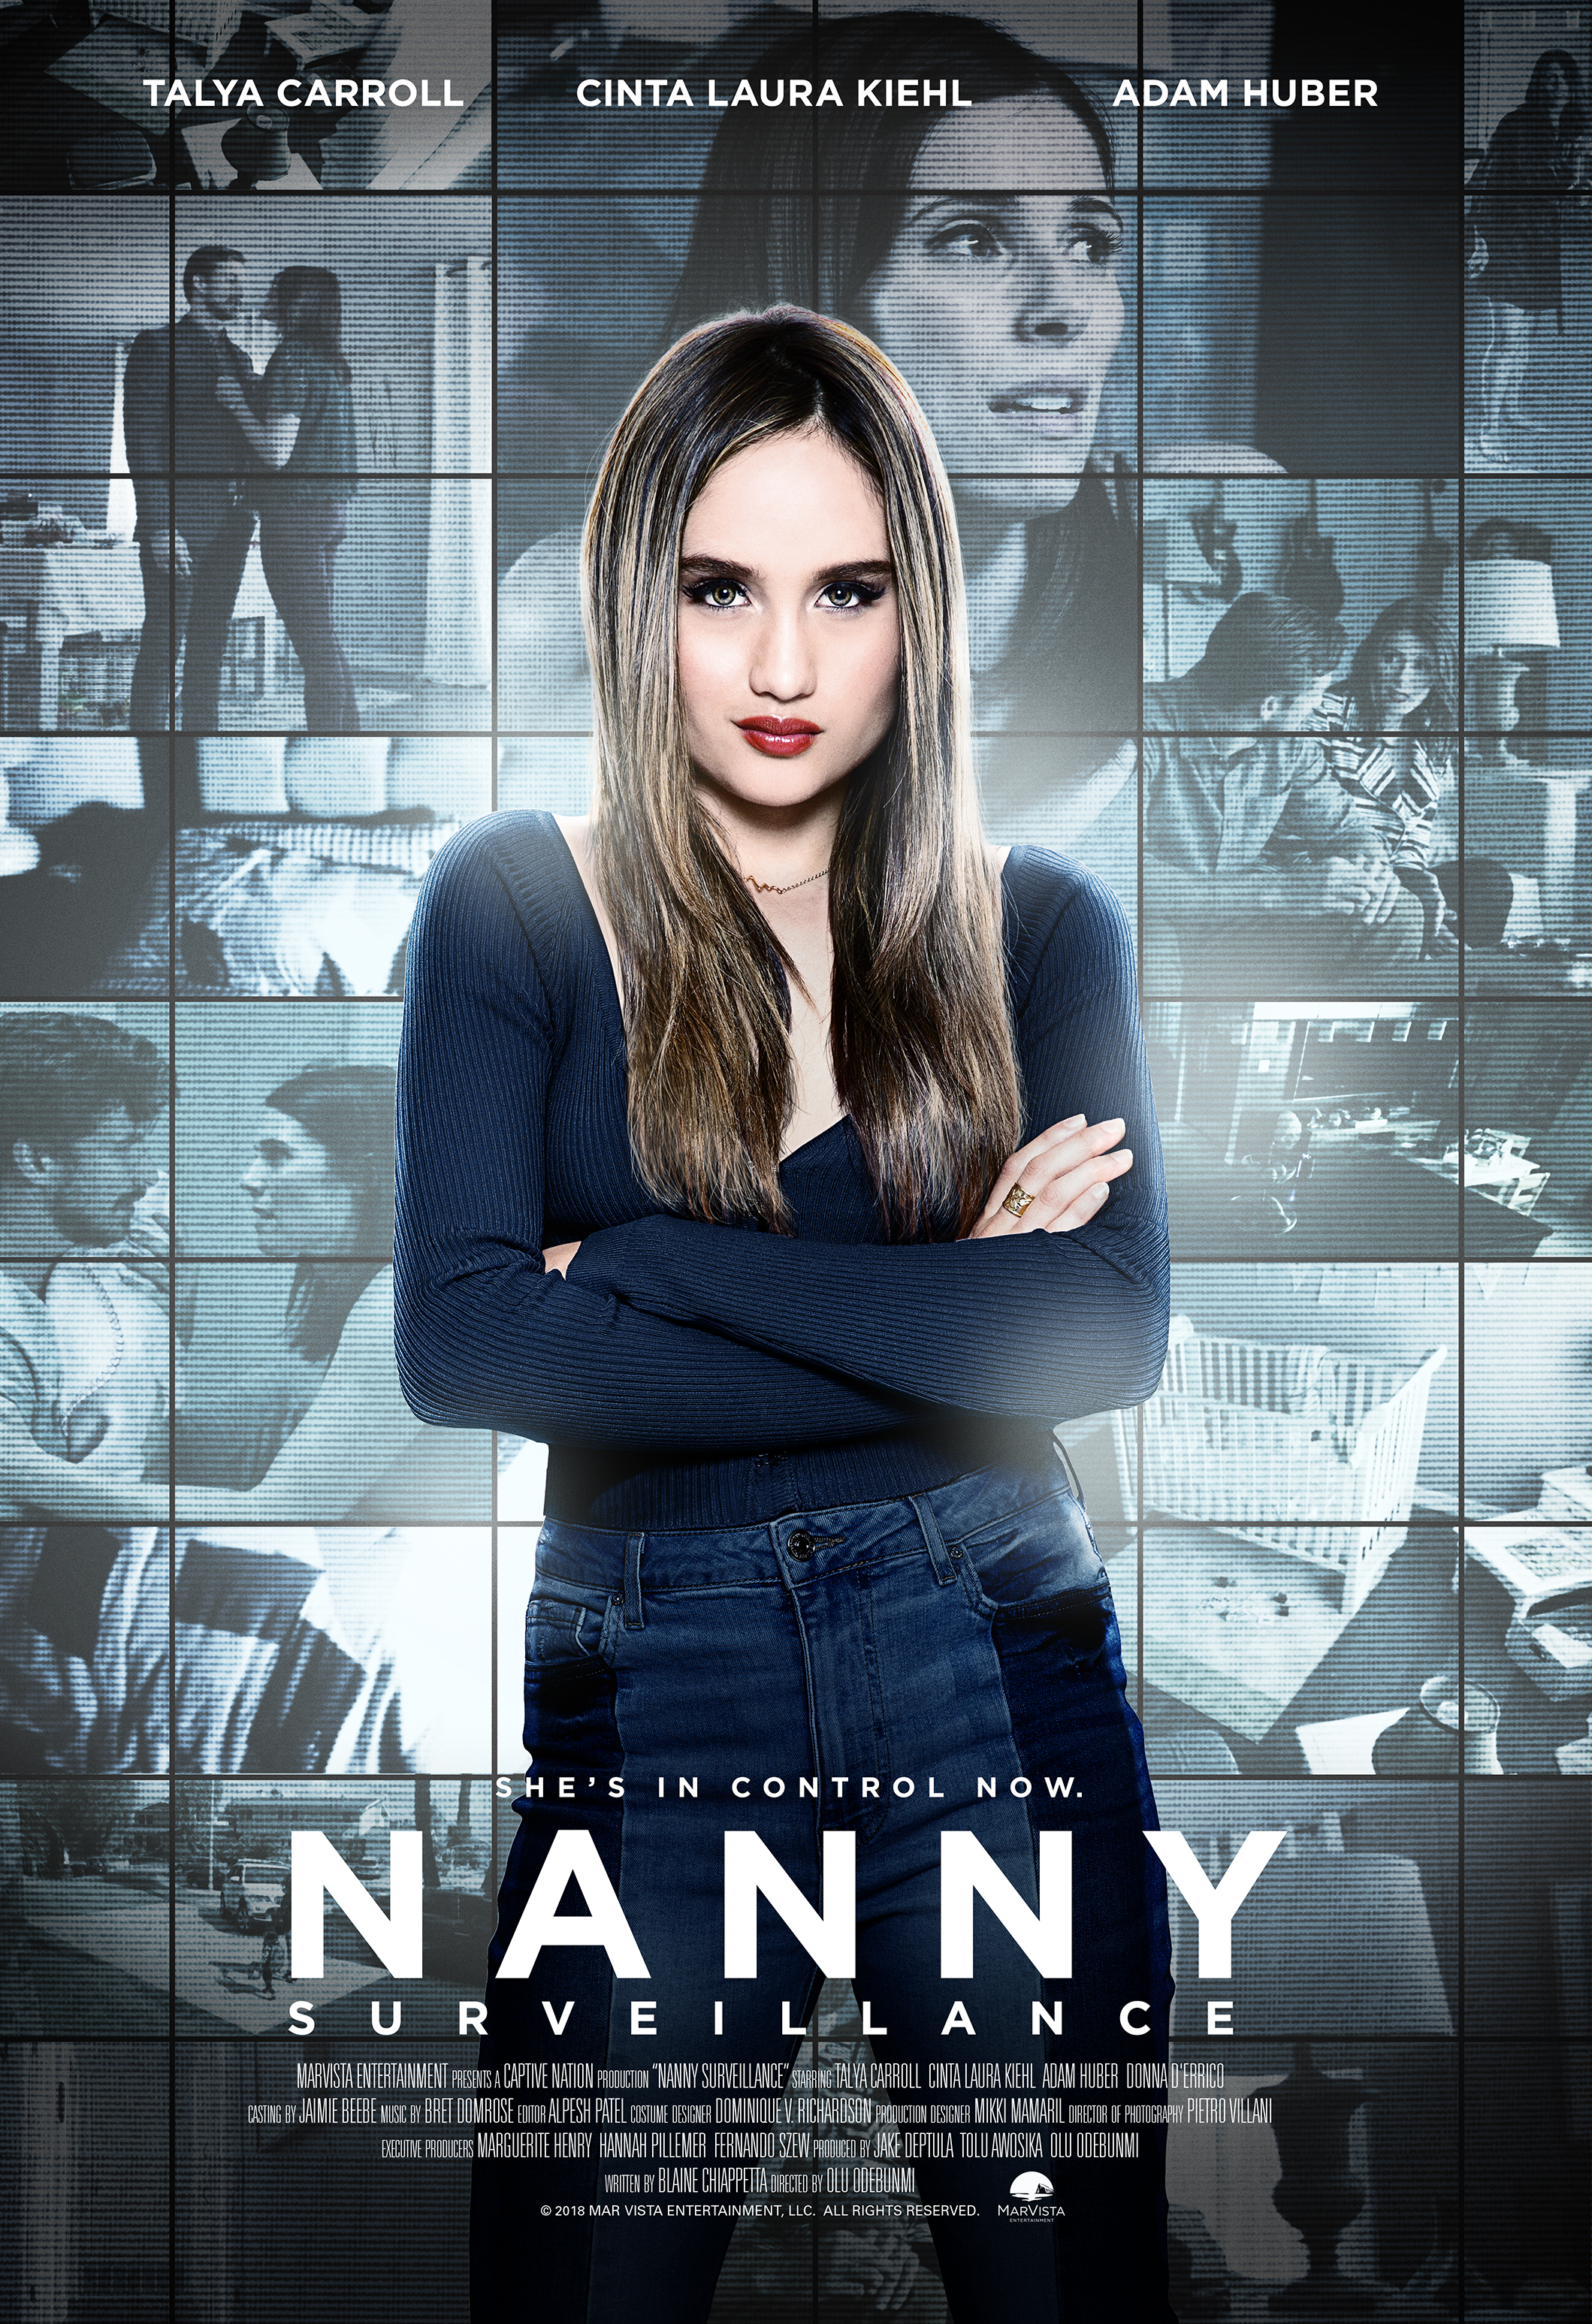 Nanny Surveillance Tv Movie 2018 Imdb